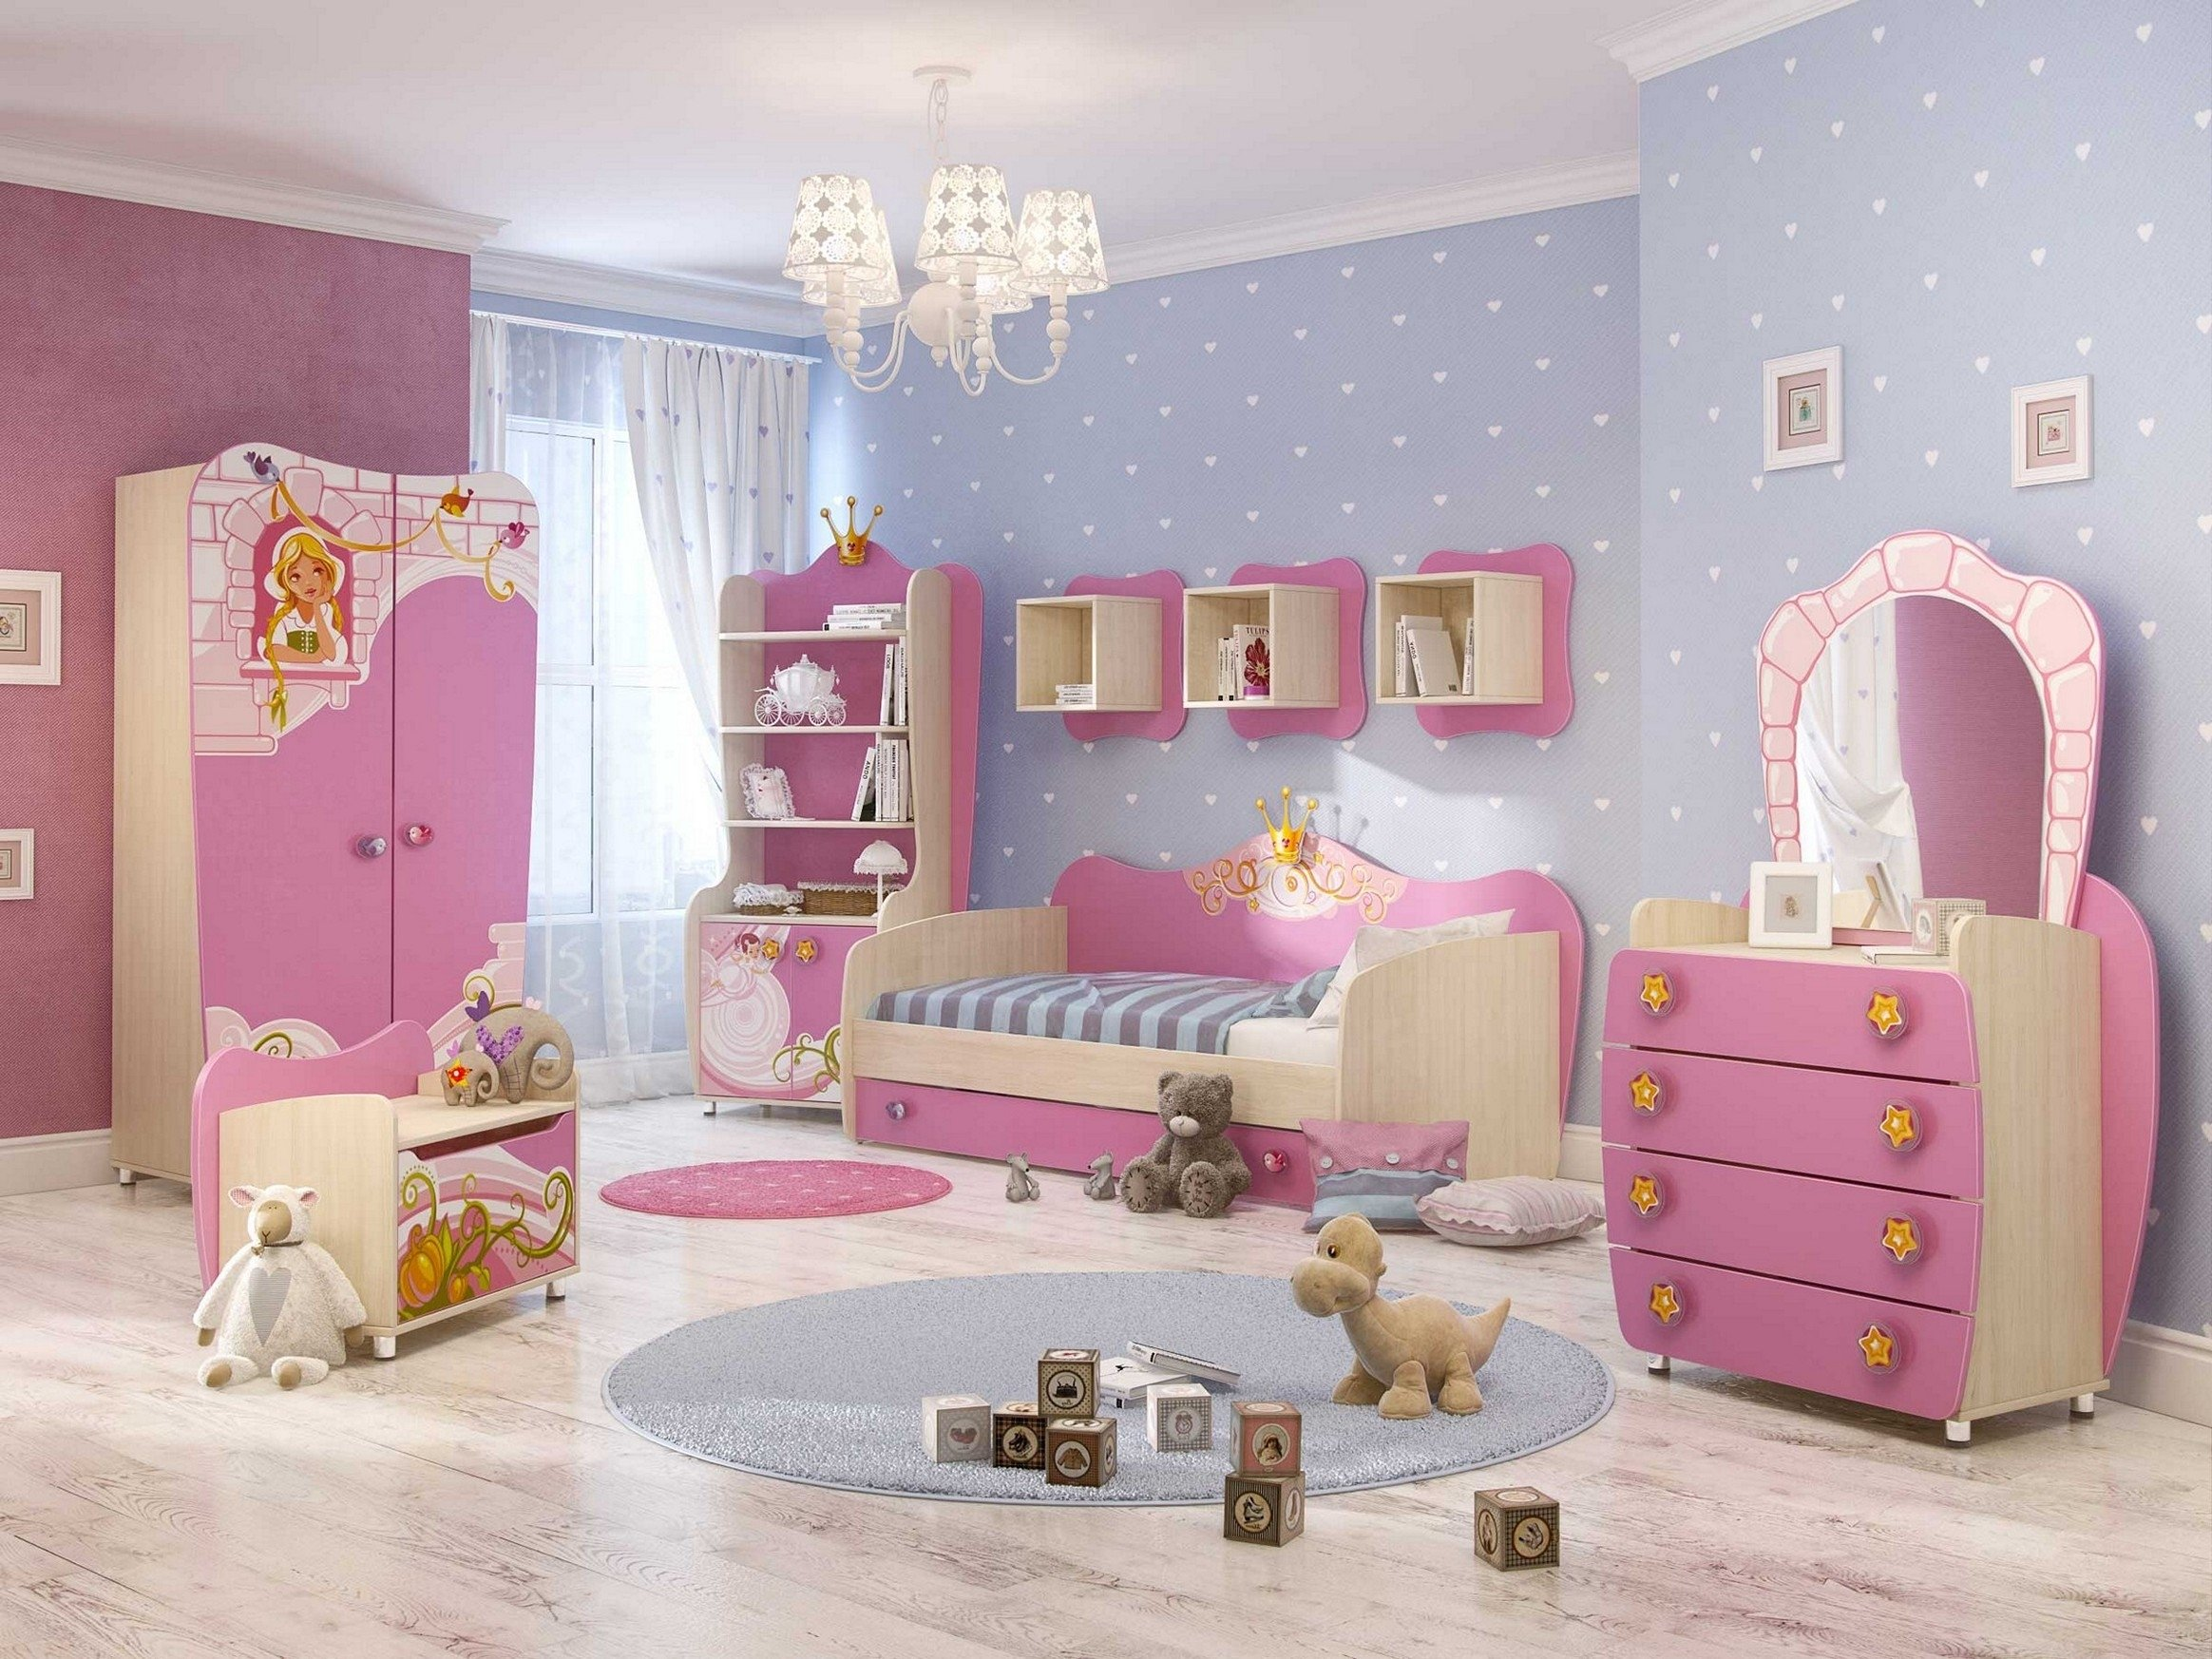 10 Nice Cute Little Girl Room Ideas pictures of girl rooms bedroom kids bedroom designs girls room ideas 1 2020